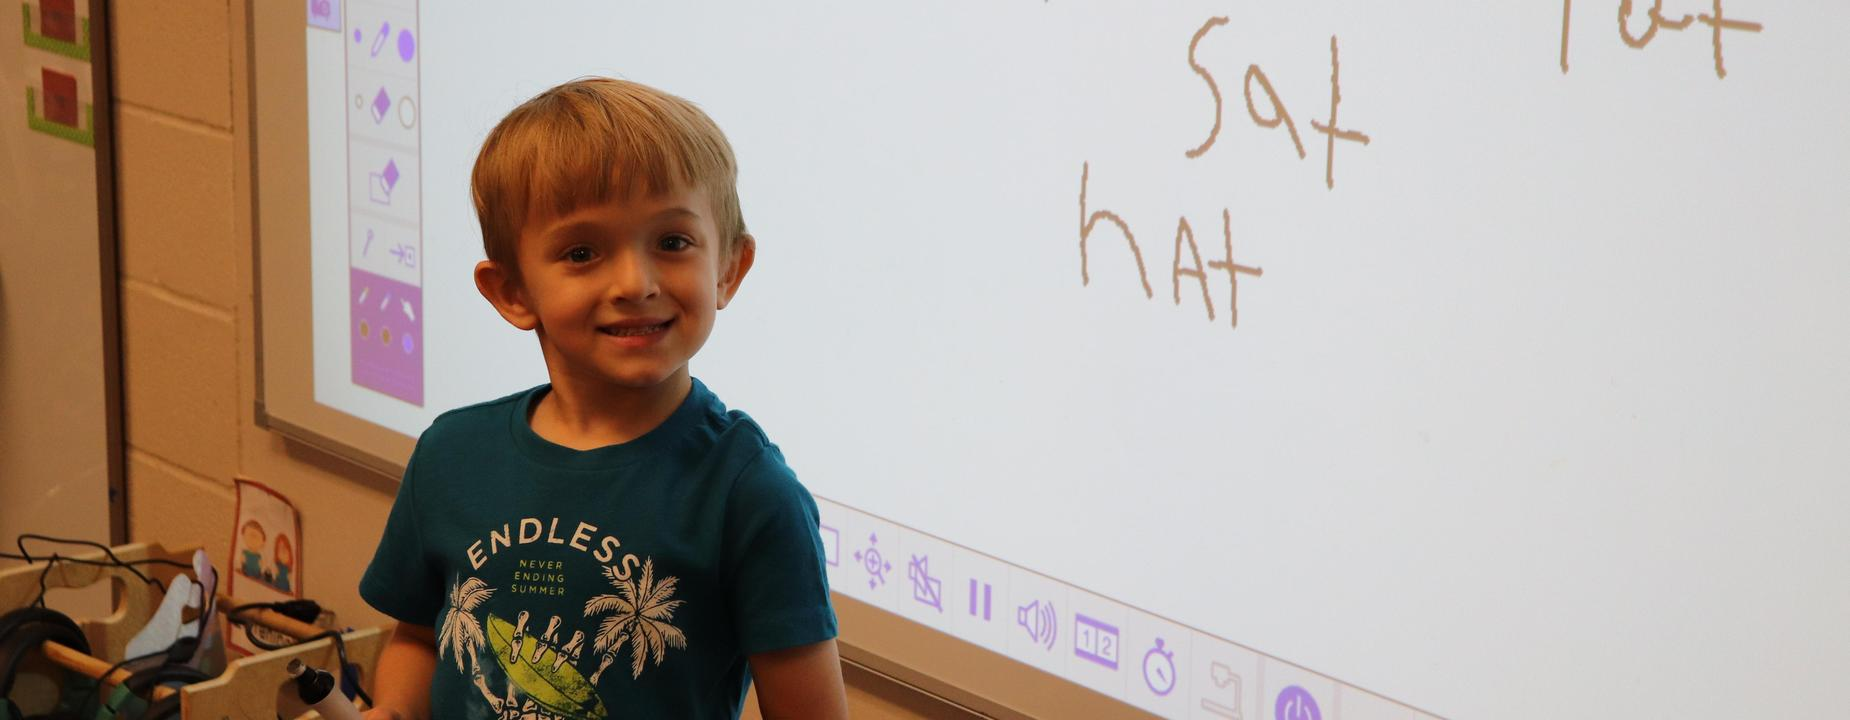 Primary Boy writing on board